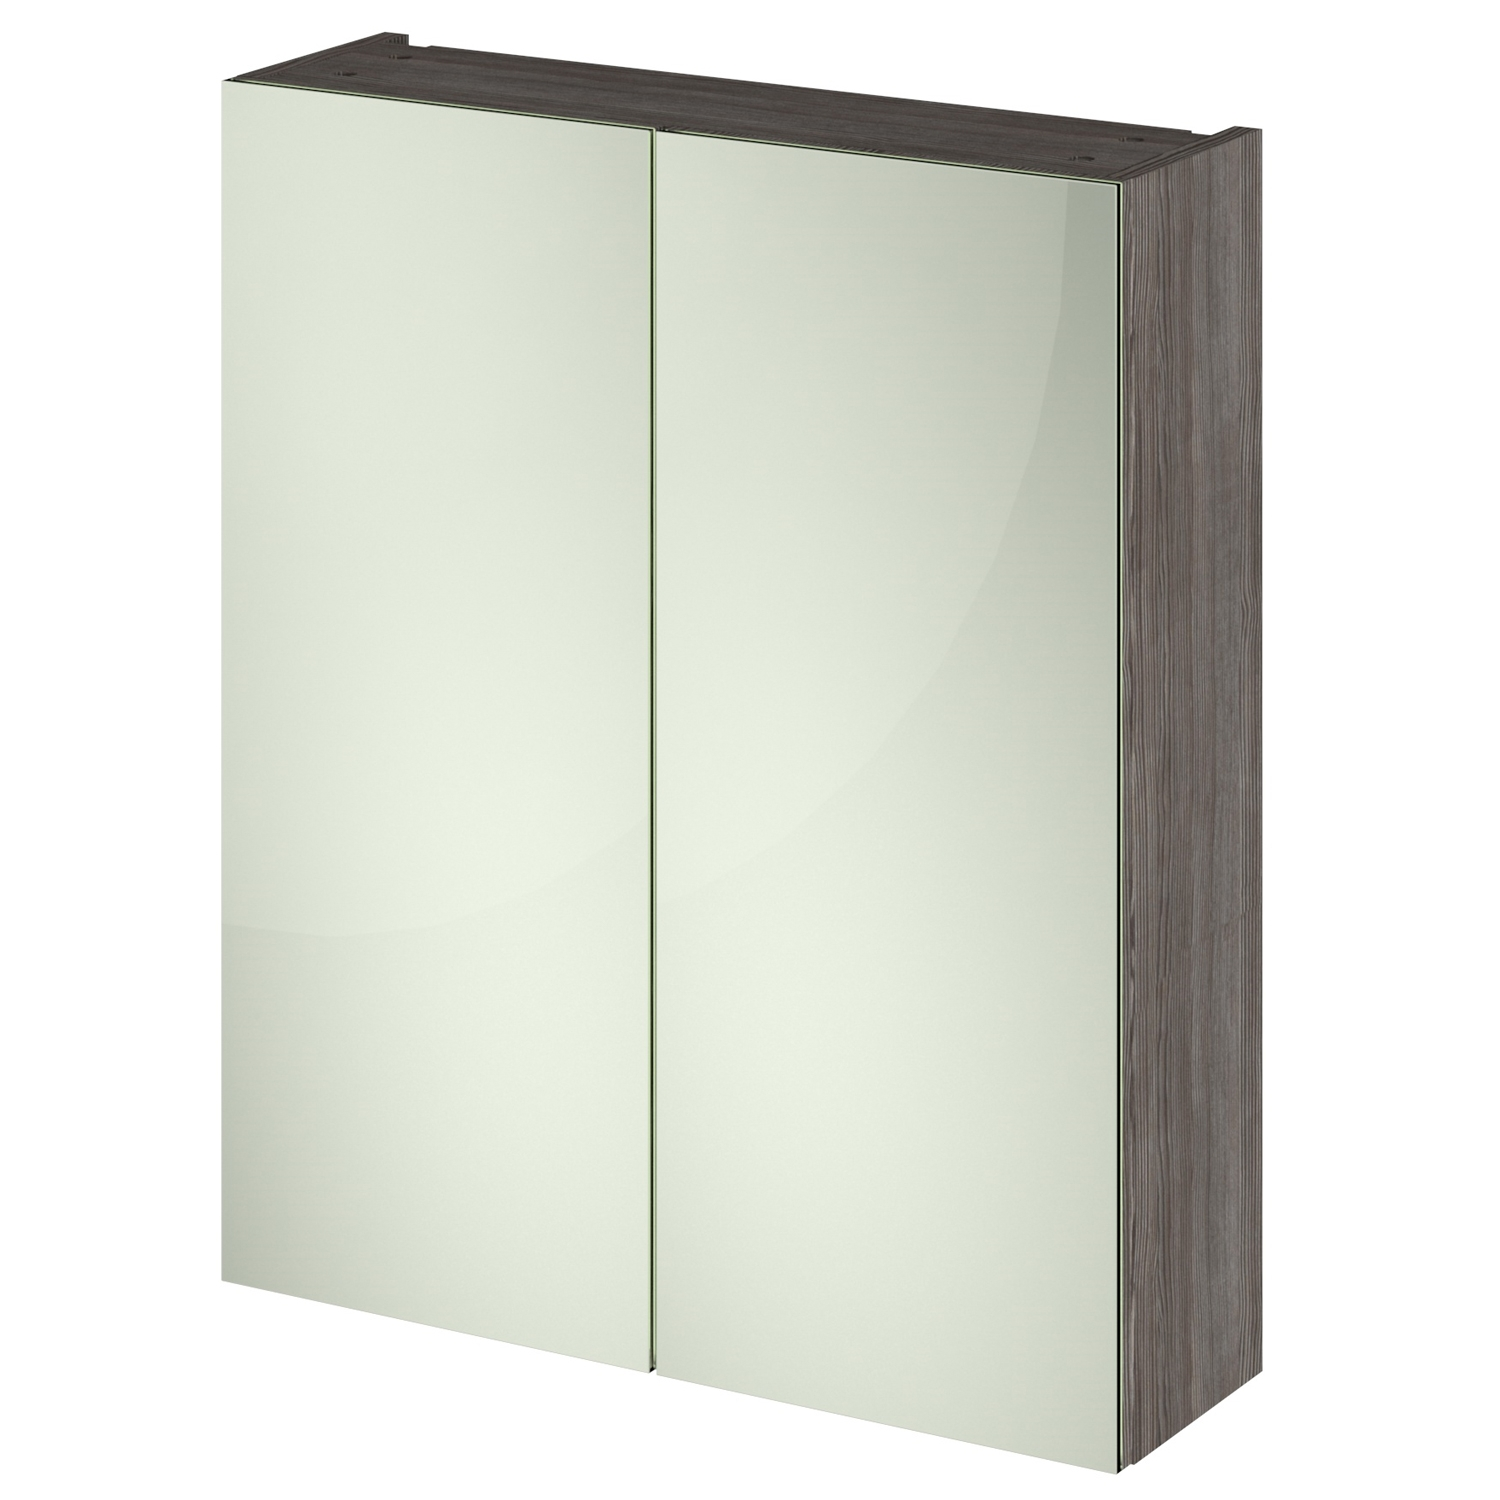 https://www.mepstock.co.uk/admin/images/hudson-reed-fitted-grey-avola-bathroom-cabinet-off517.jpg